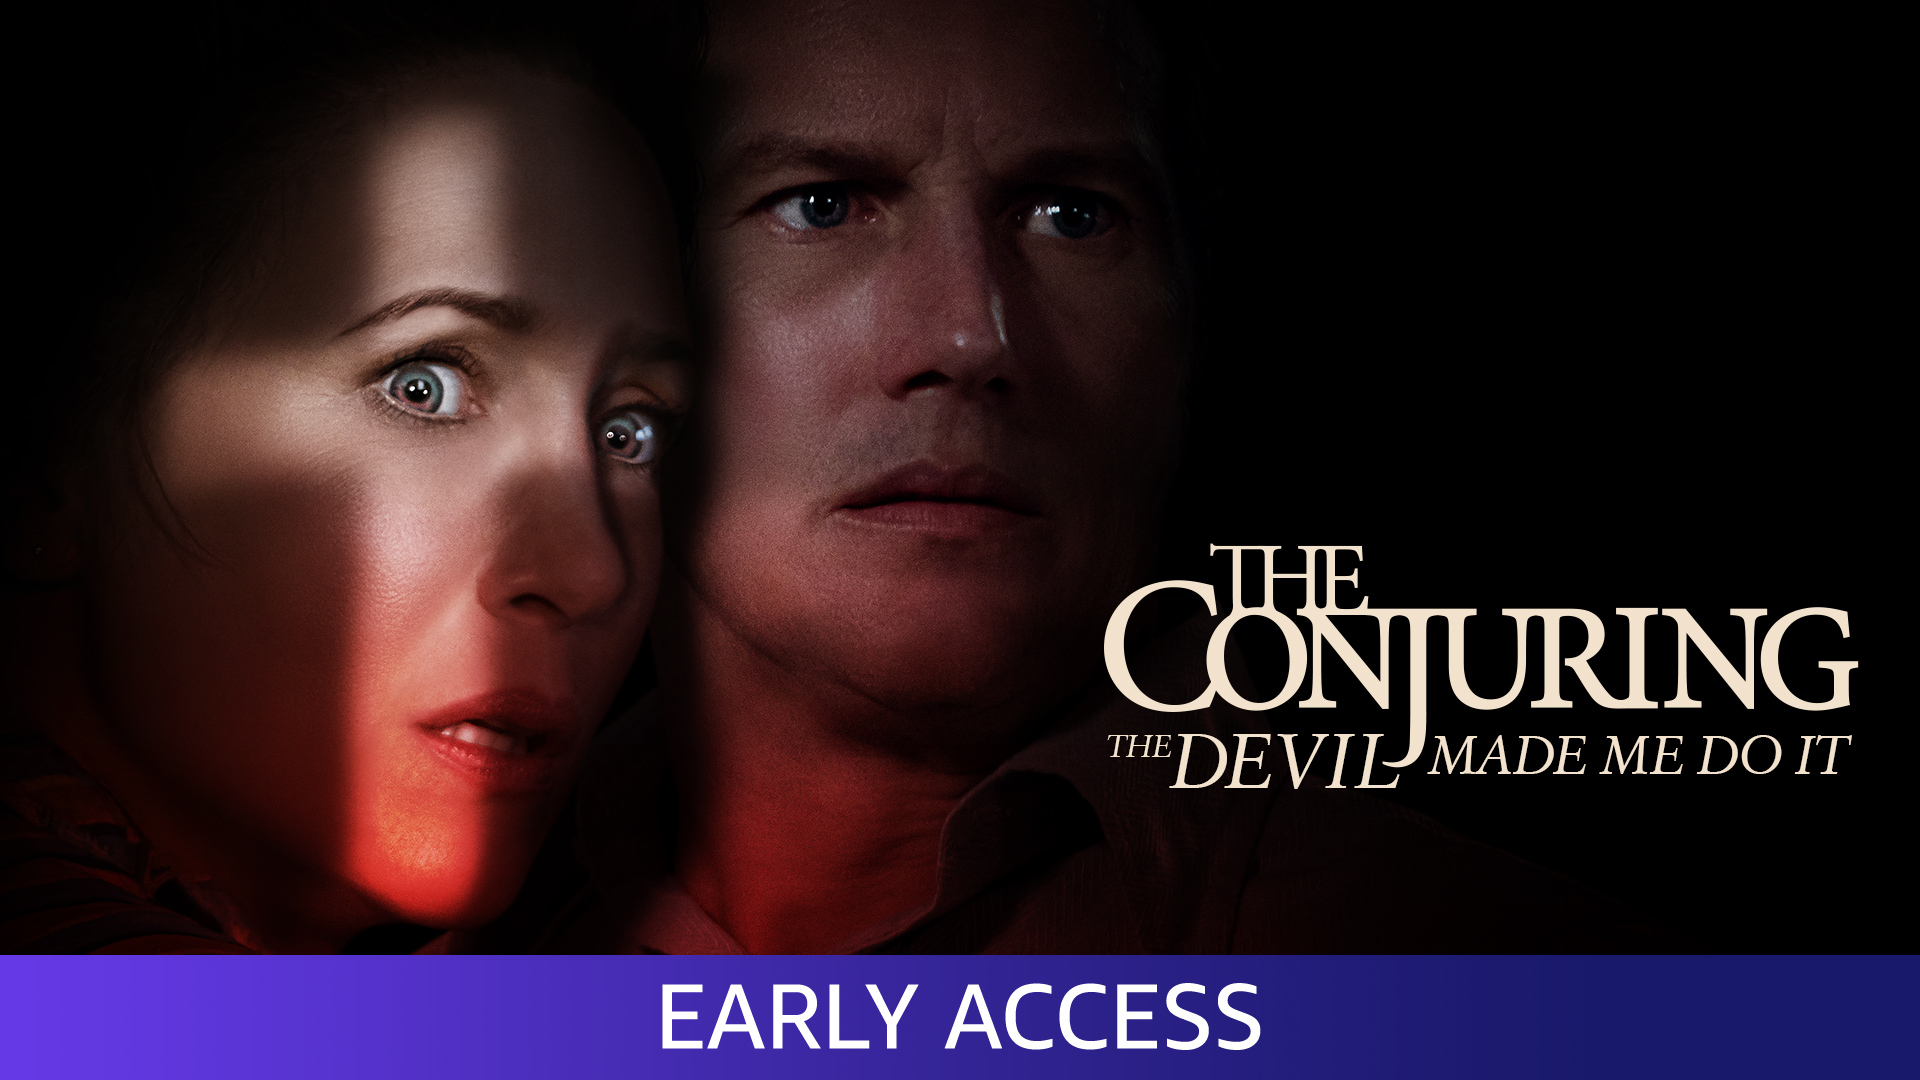 The Conjuring: The Devil Made Me Do It (2021) (4K UHD)